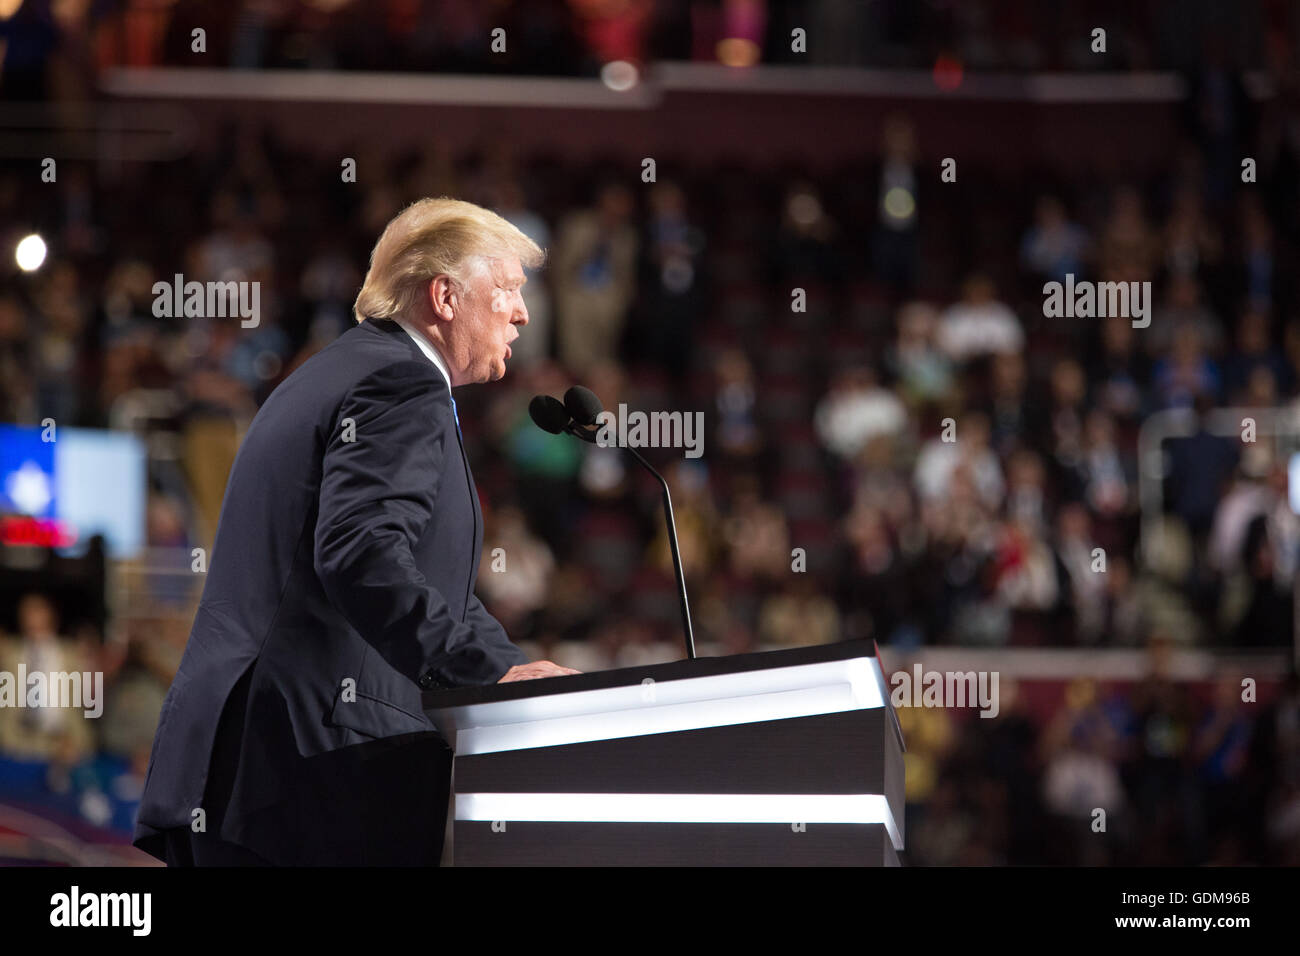 Cleveland, Ohio, USA. 18th July, 2016. Donald J. Trump introduces his wife Melania. First night at the Republican - Stock Image